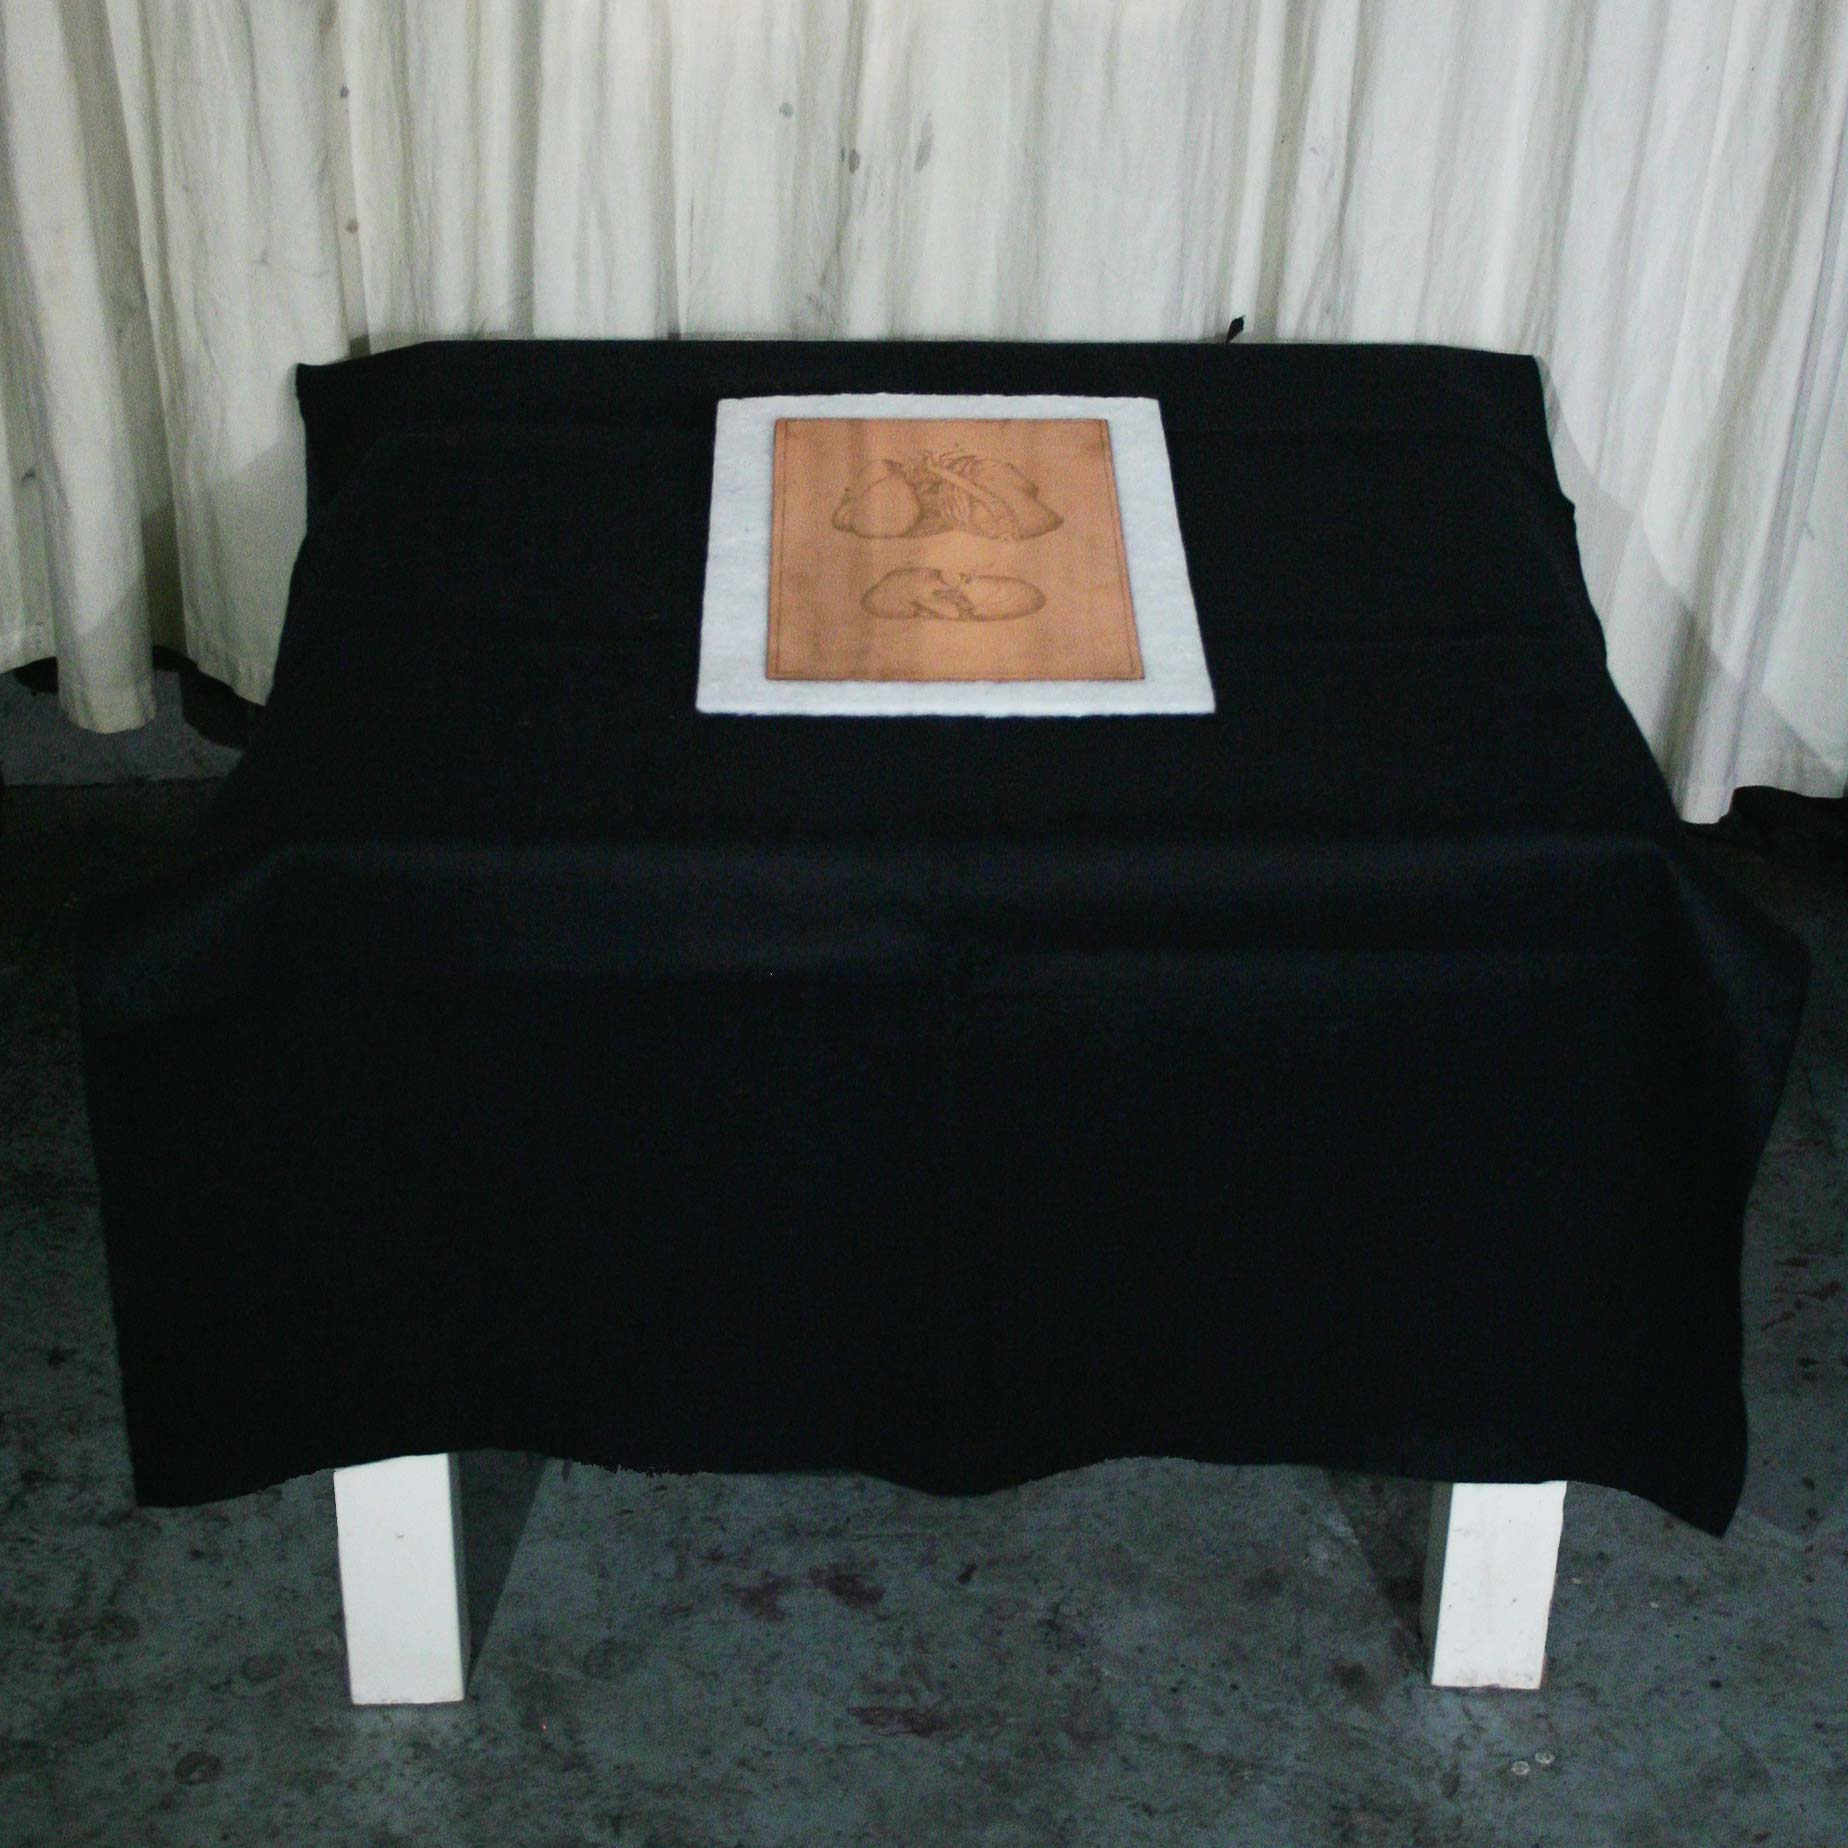 Table de divination  2017, Copper, felt and table